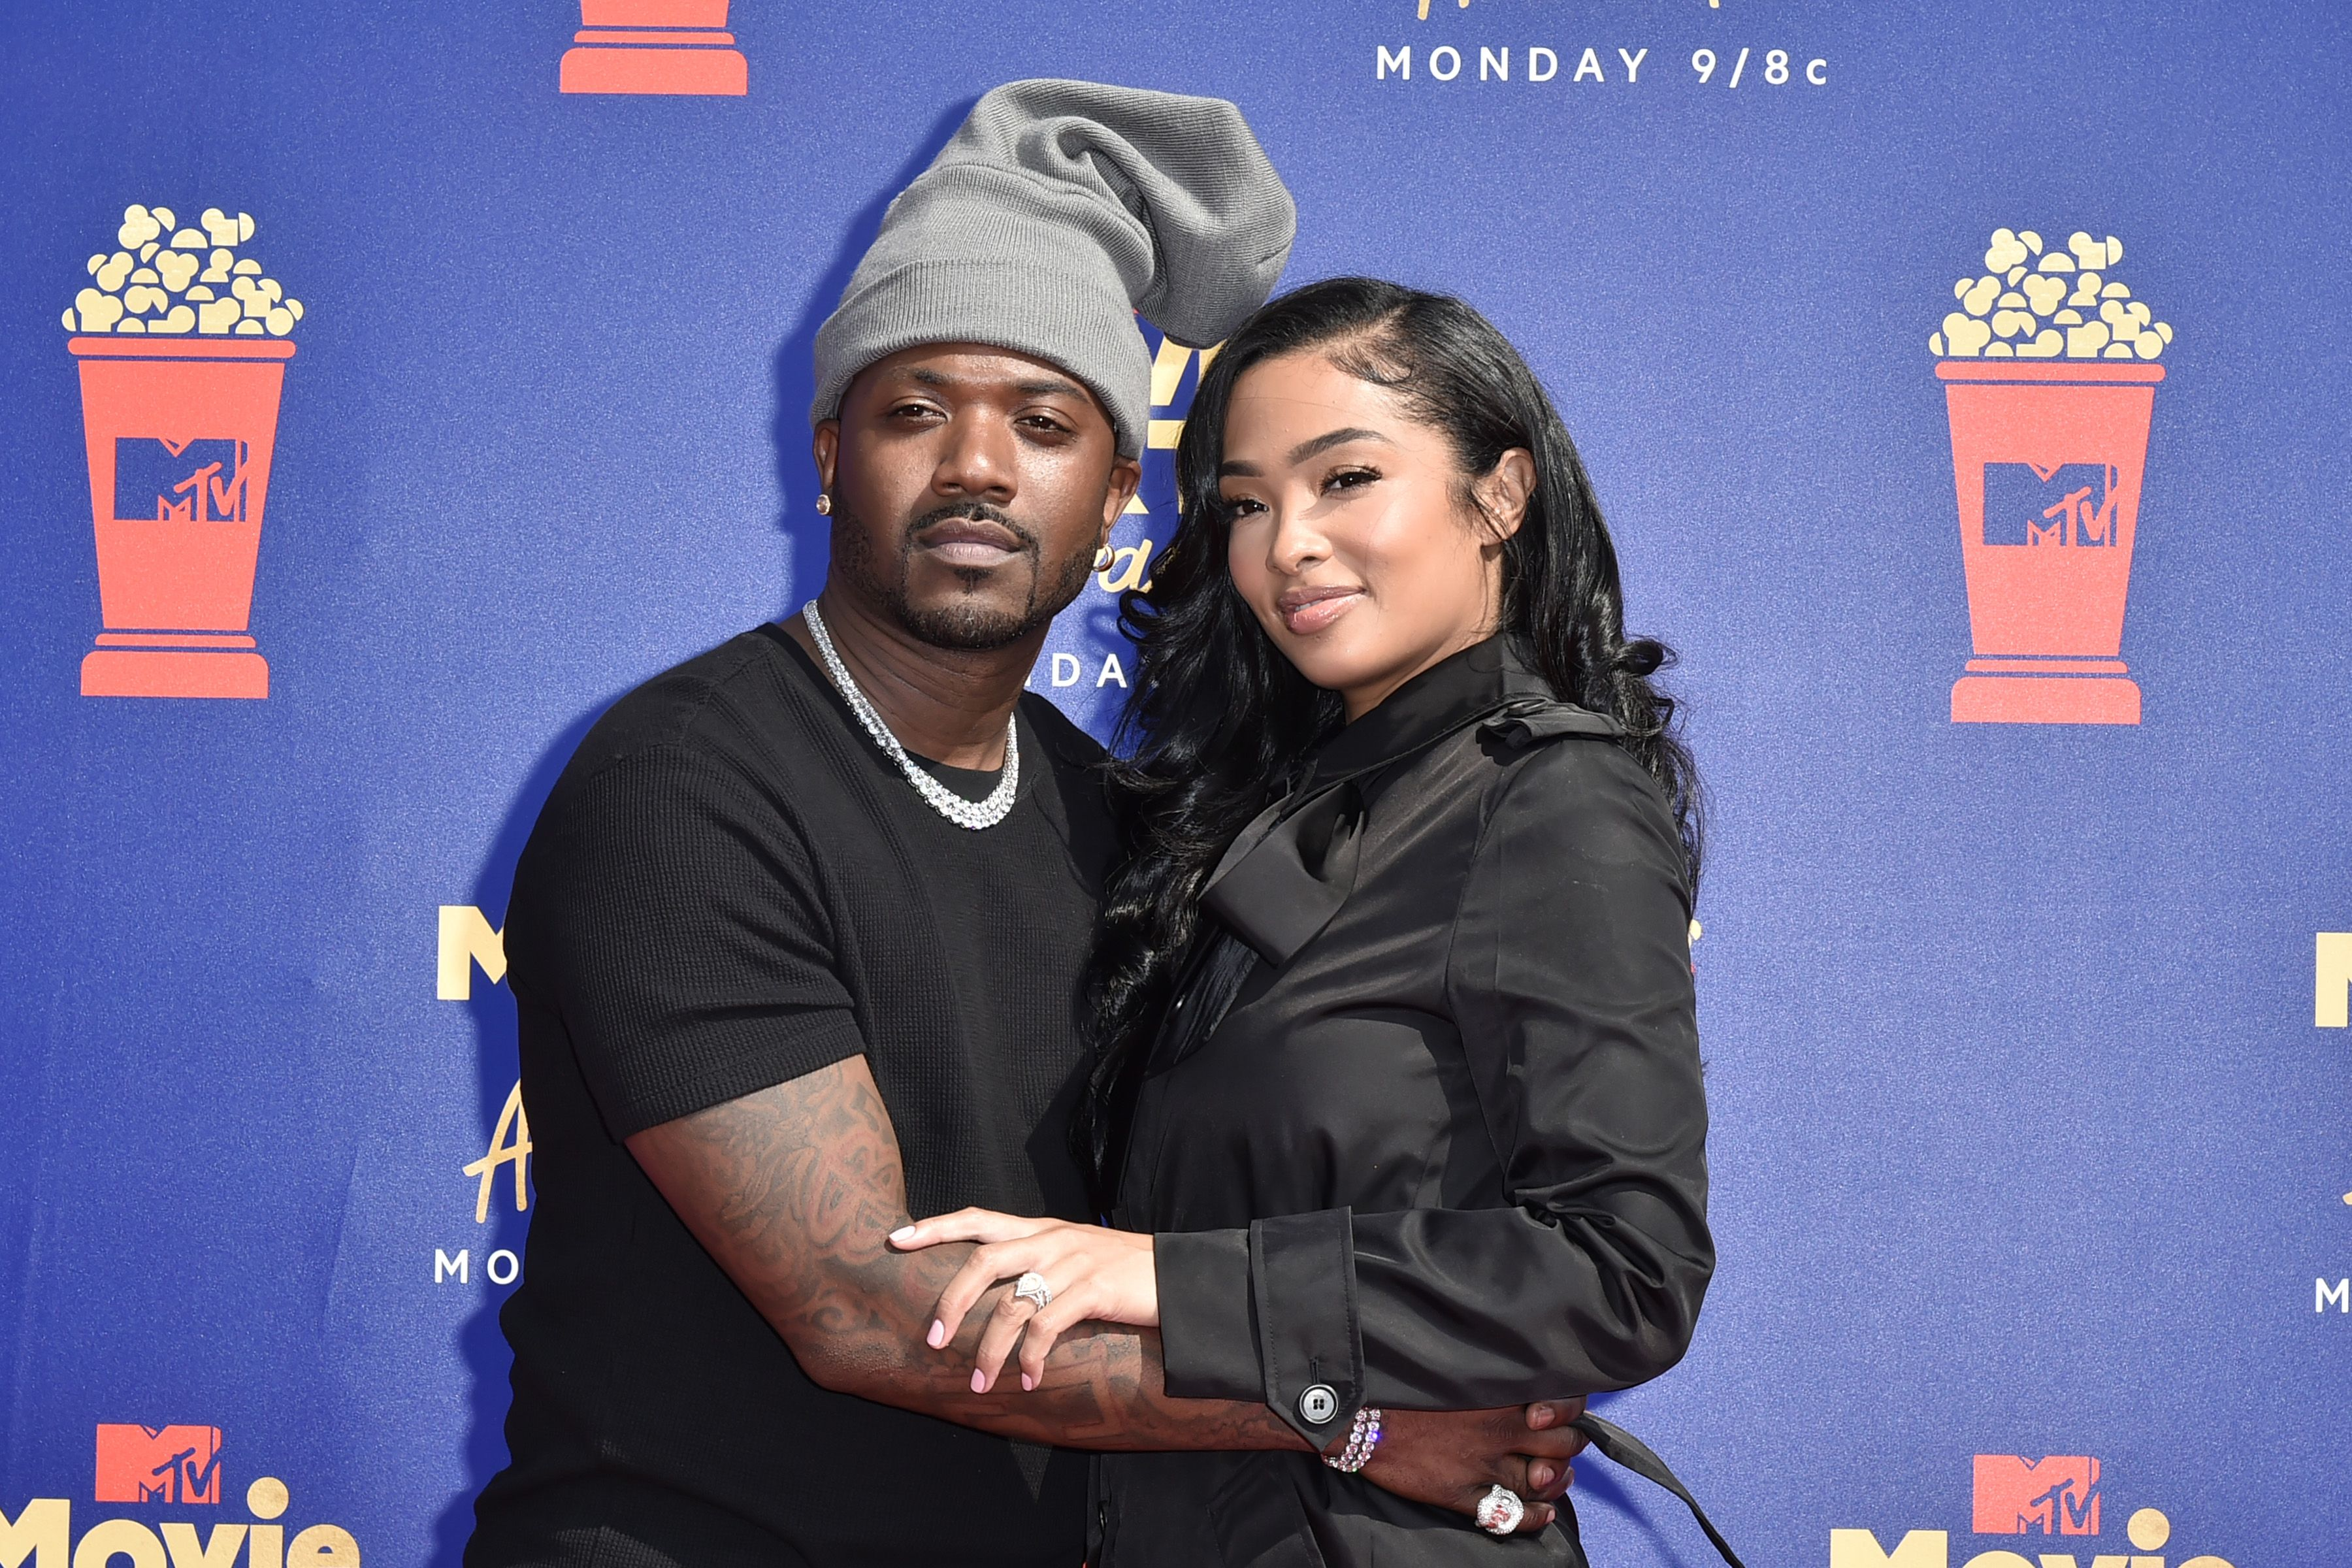 Ray J and Princess Love at the 2019 MTV Movie & TV Awards at Barker Hangar on June 15, 2019 in Santa Monica, California. | Source: Getty Images